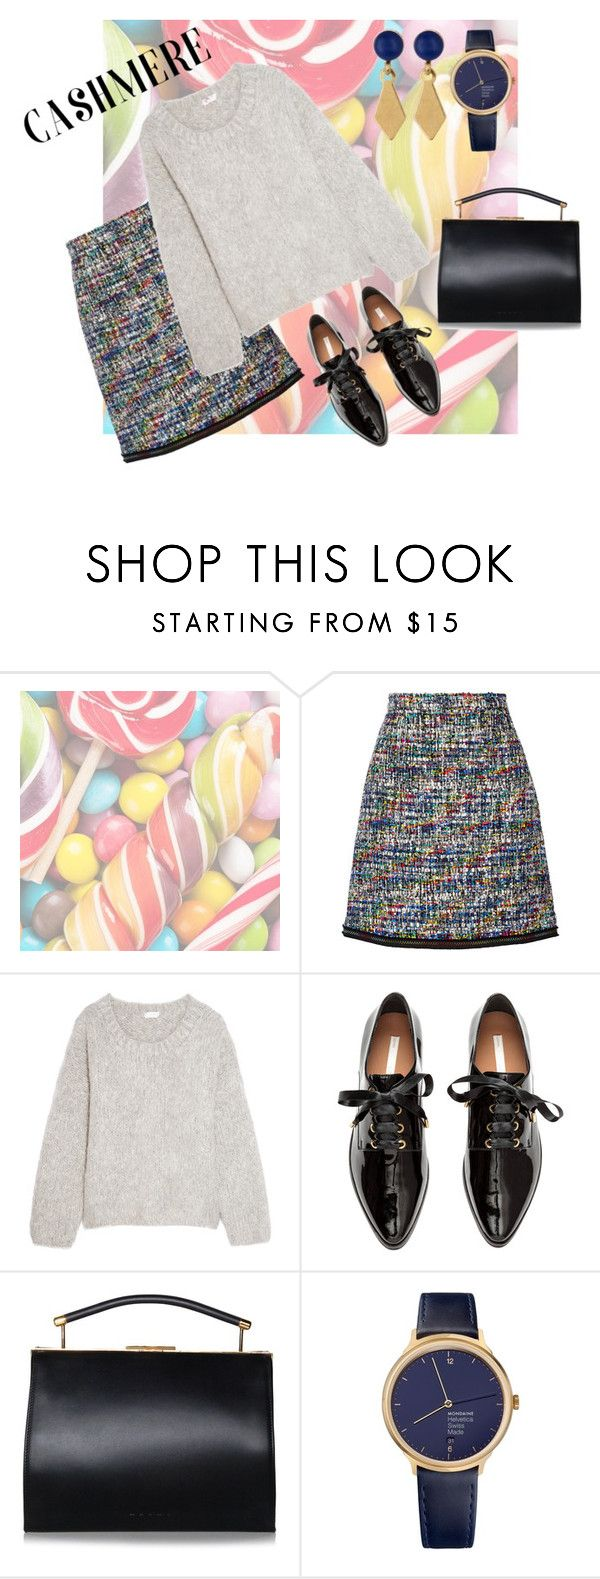 """""""Candy"""" by mia-de-neef ❤ liked on Polyvore featuring Hard Candy, Boutique Moschino, Chloé, Mondaine and Melrose & Market"""